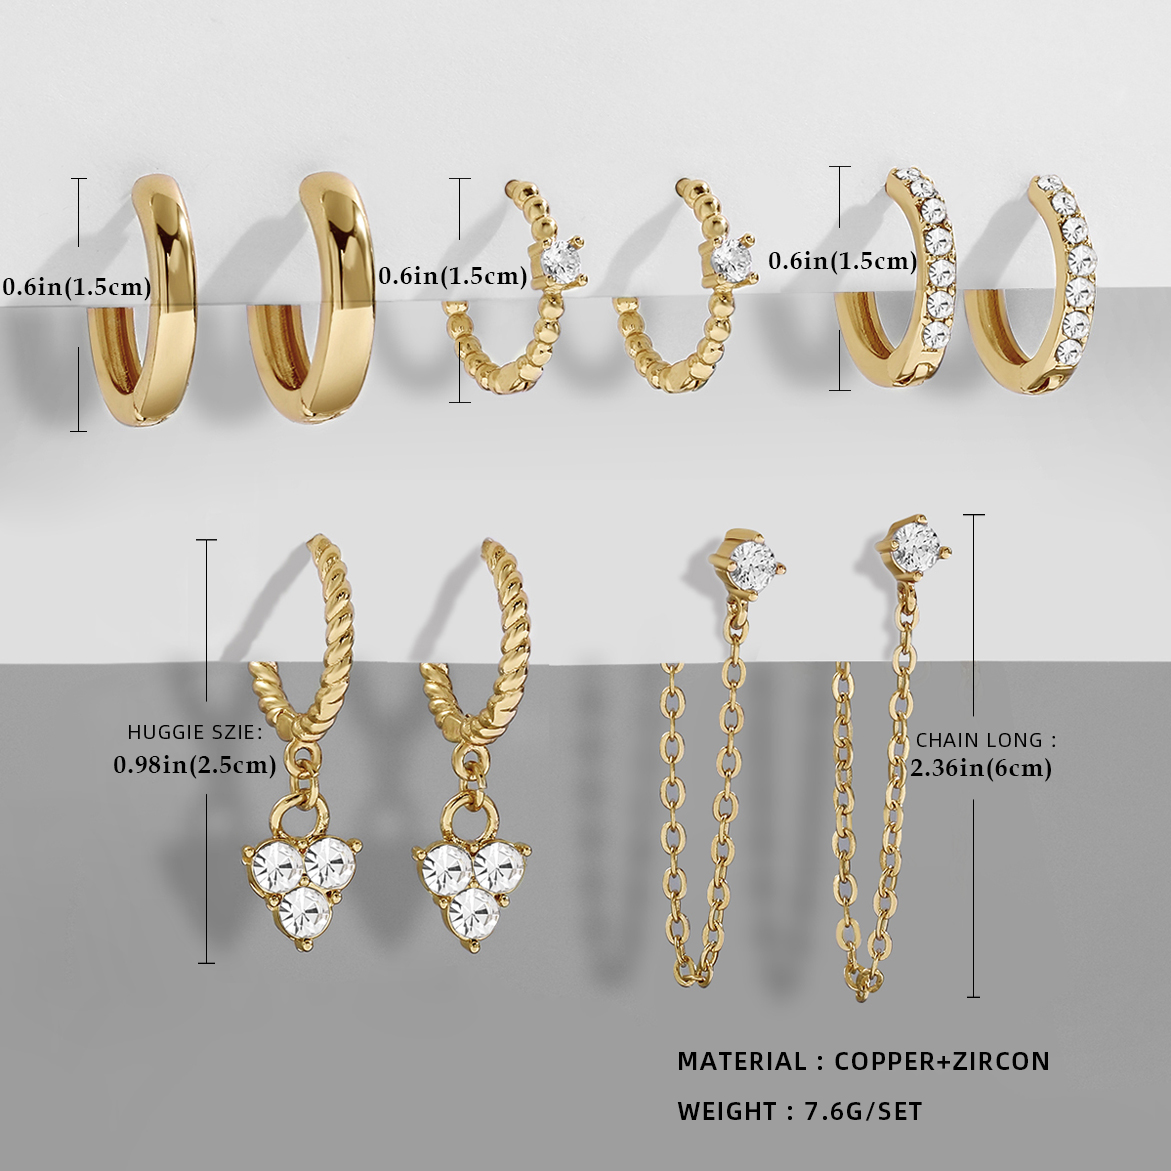 New Design CZ Zircon Crystal Small Hoops Sets Long Gold Chain Earrings for Women Twist Beads Huggie Fashion Jewelry Brincos 2021